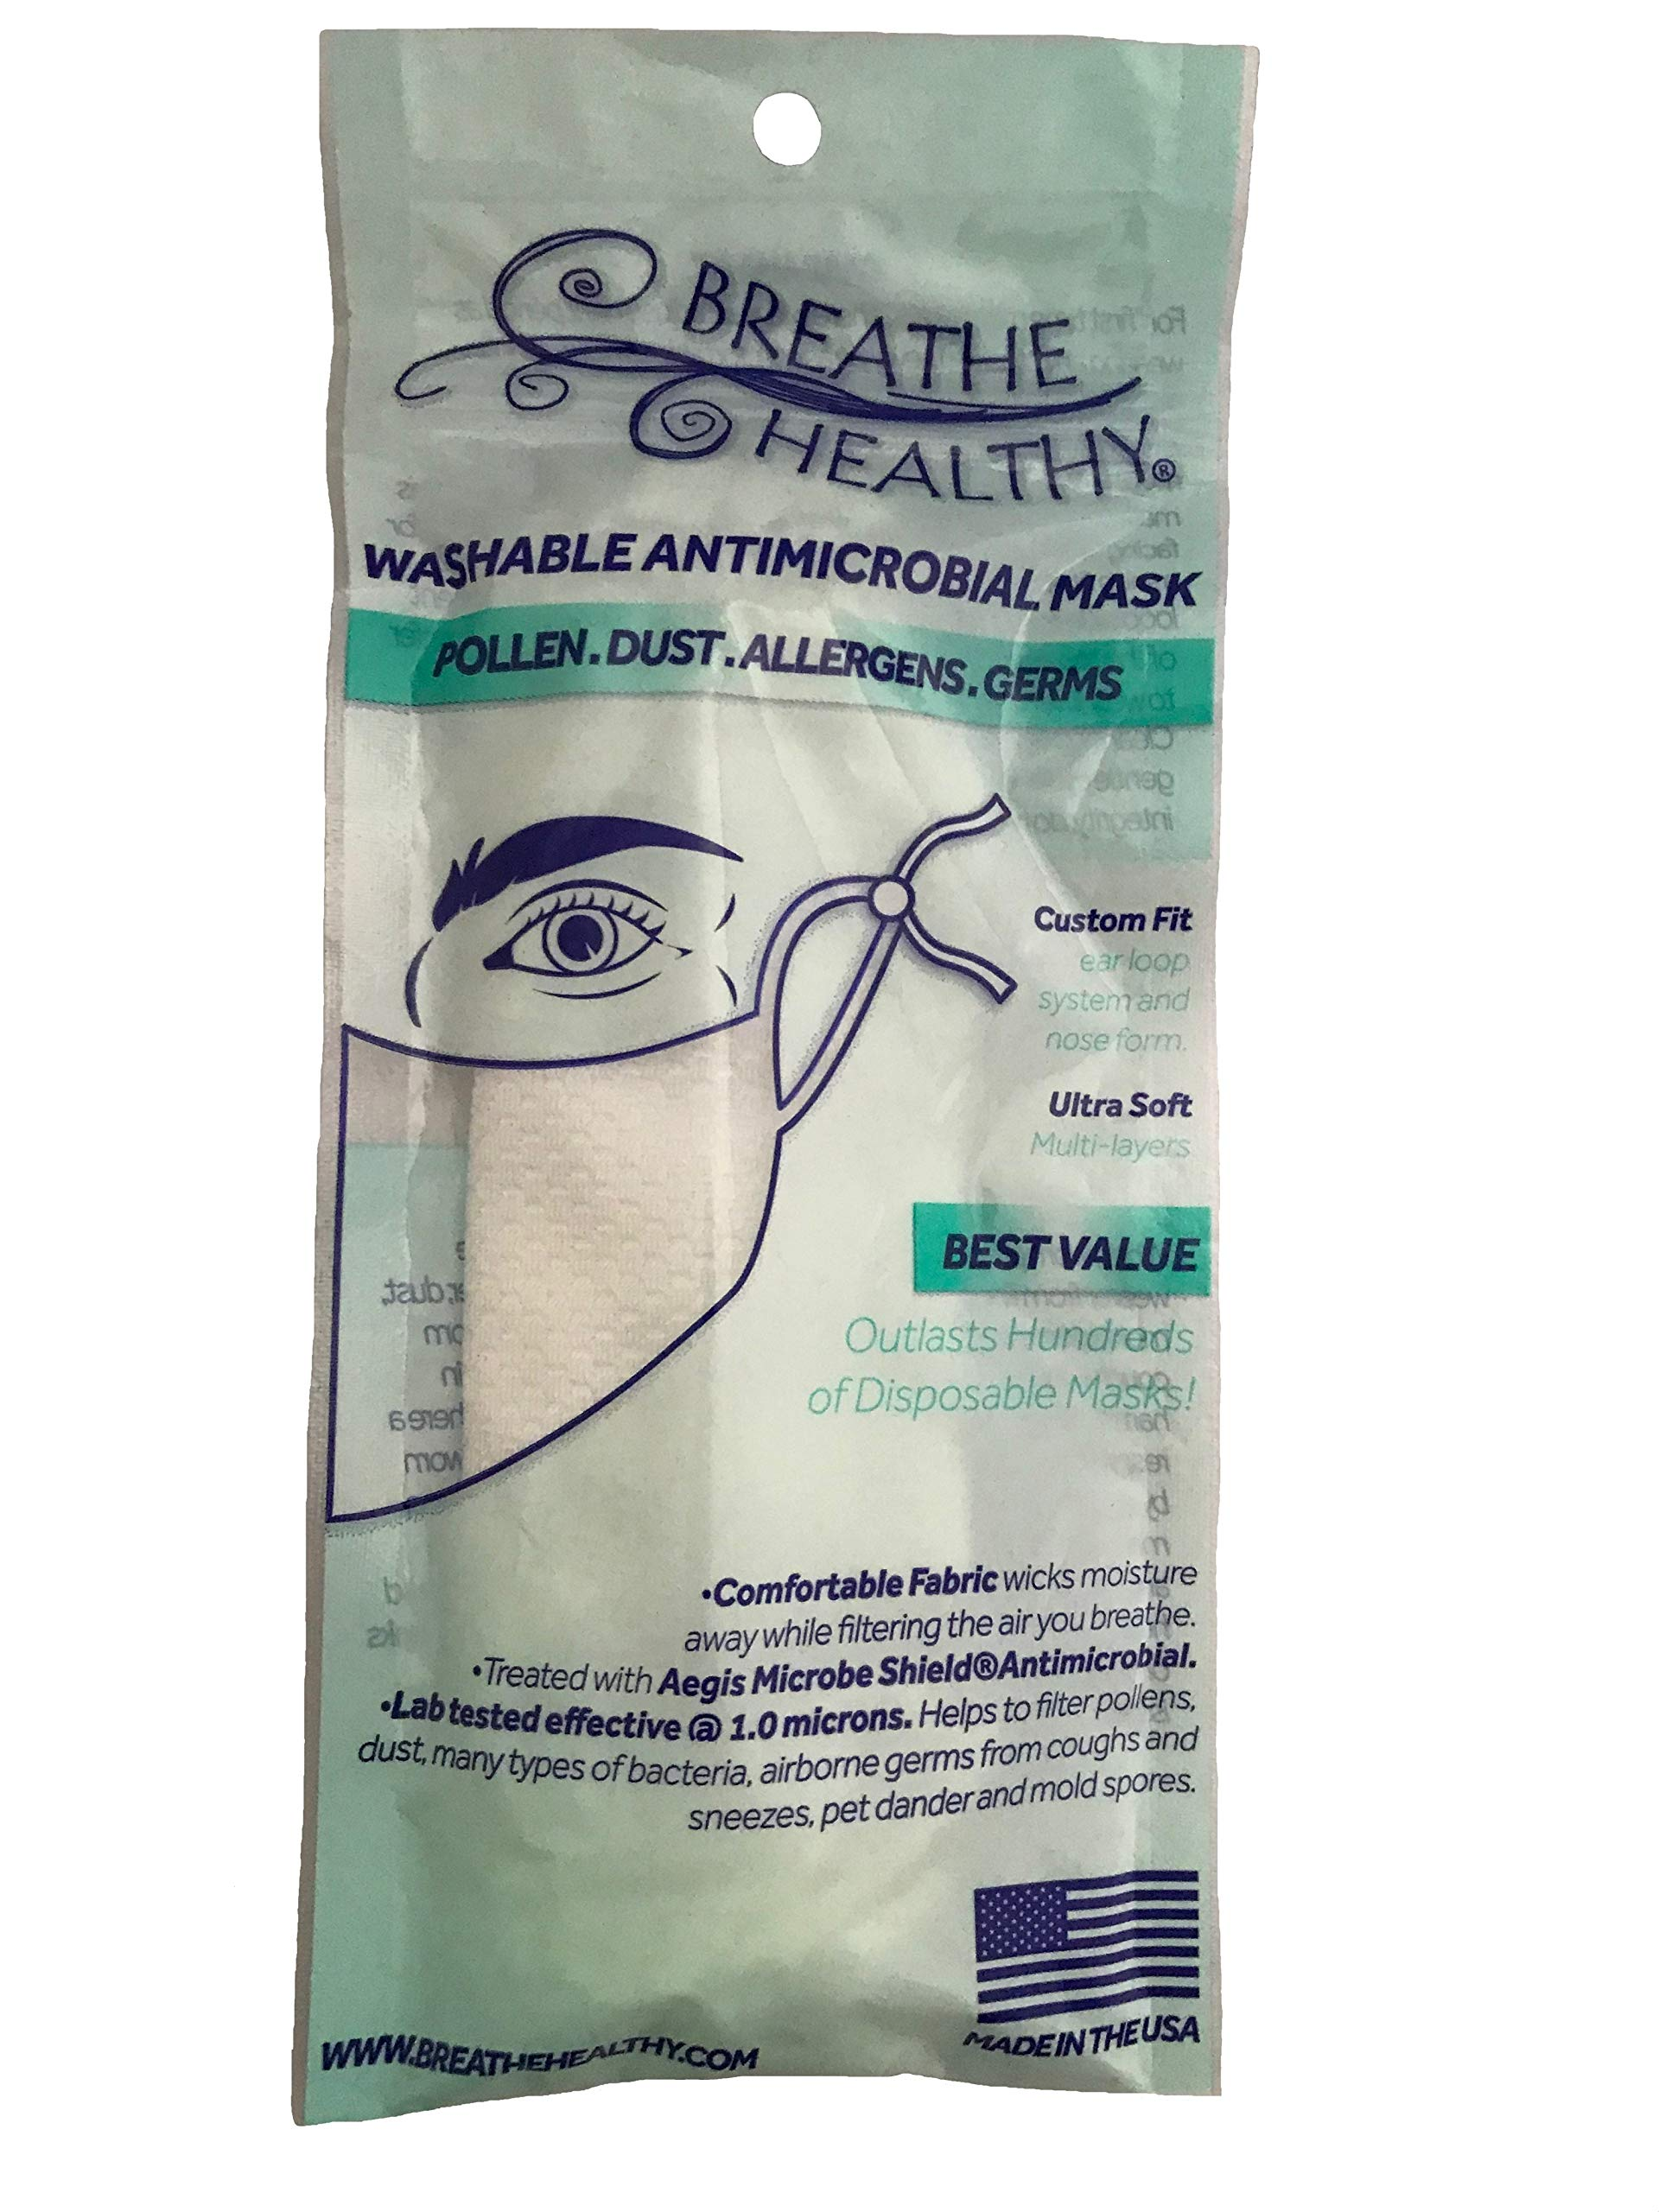 Breathe Healthy Dust, Allergy & Flu Mask - Comfortable, Washable Protection from Dust, Pollen, Allergens, Cold & Flu Germs with Antimicrobial; Asthma Mask; Pink Dogwwd Design (Adult) by Breathe Healthy® Masks